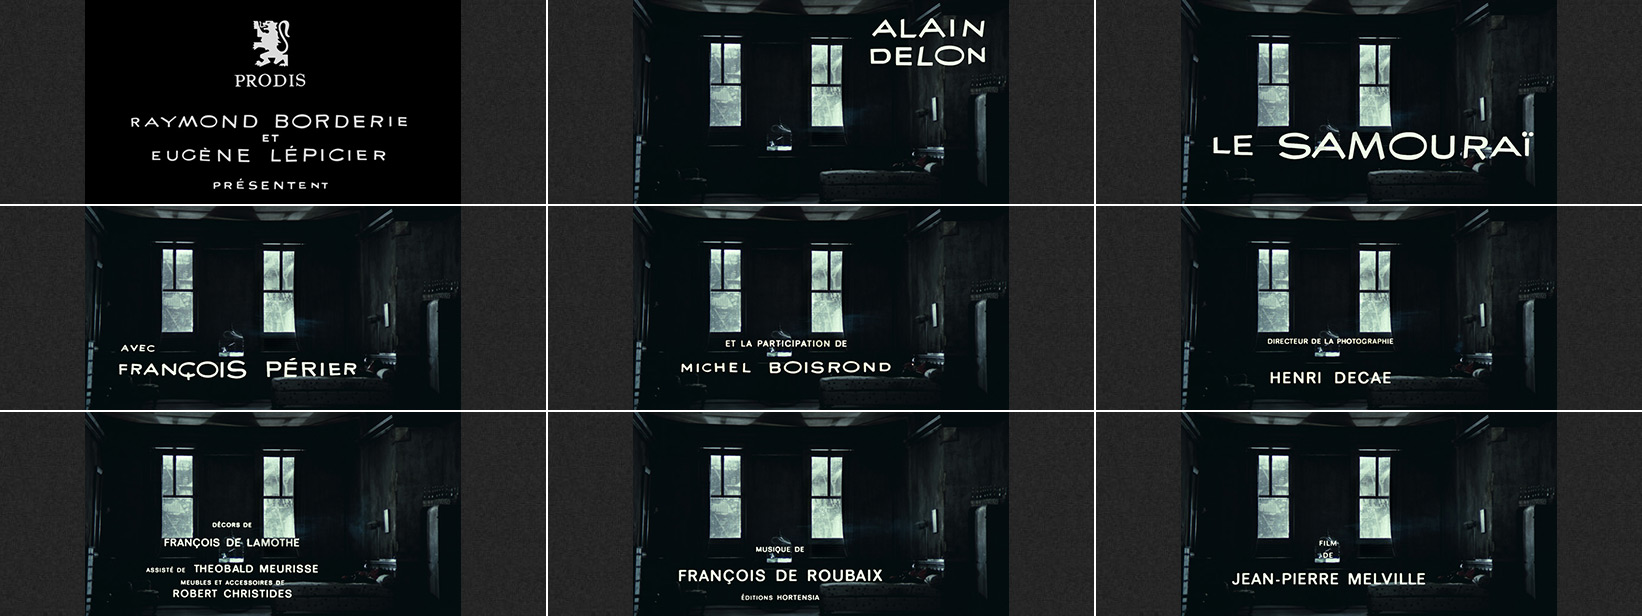 Le samouraï (1967) Jean-Pierre Melville - title sequence